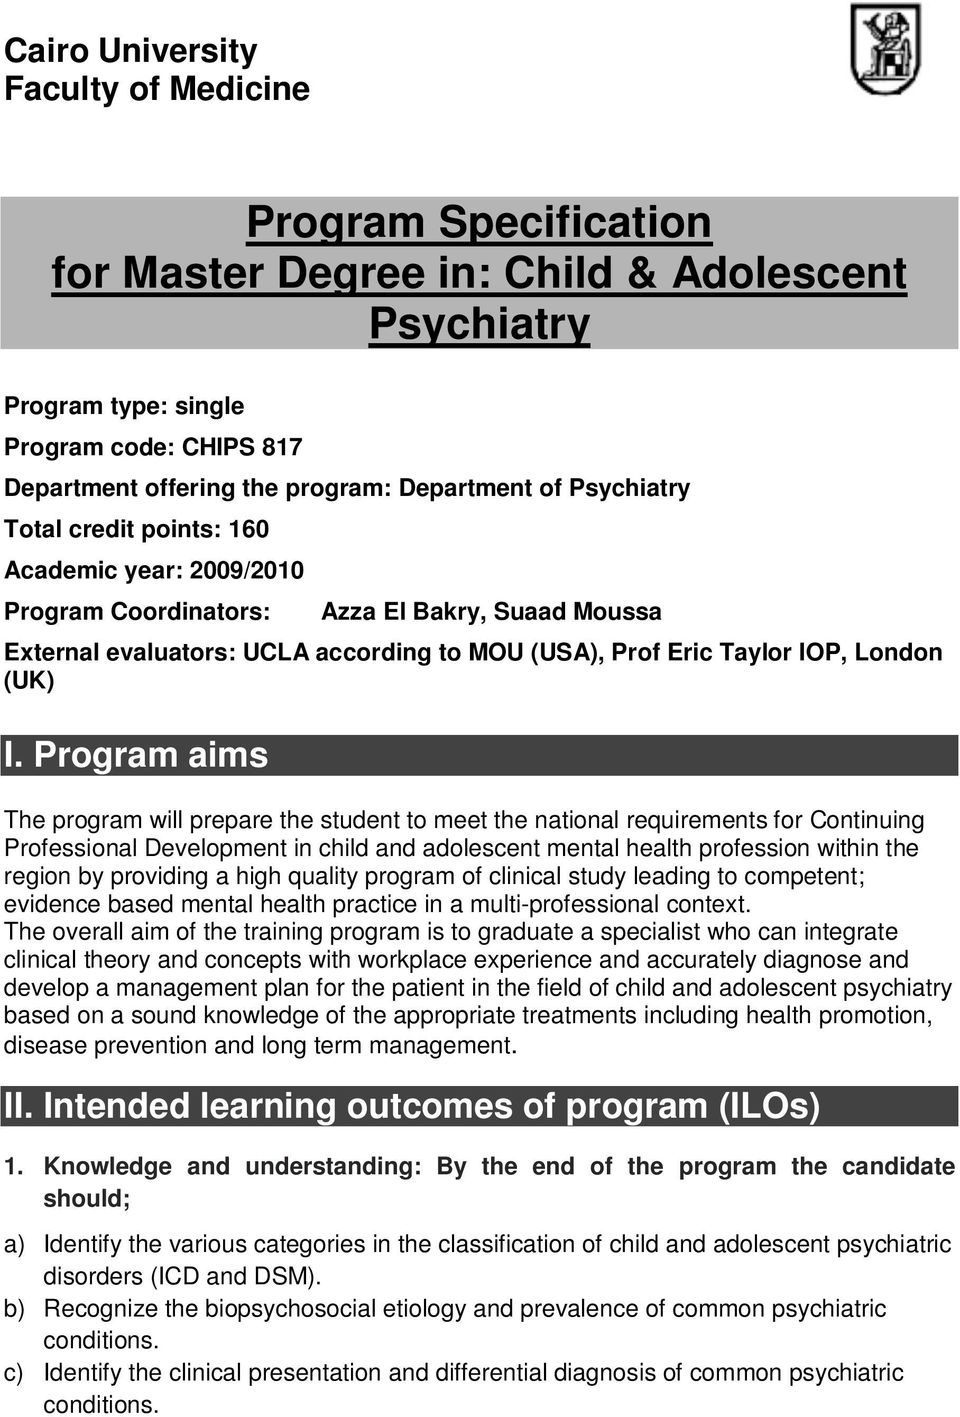 Program aims The program will prepare the student to meet the national requirements for Continuing Professional Development in child and adolescent mental health profession within the region by